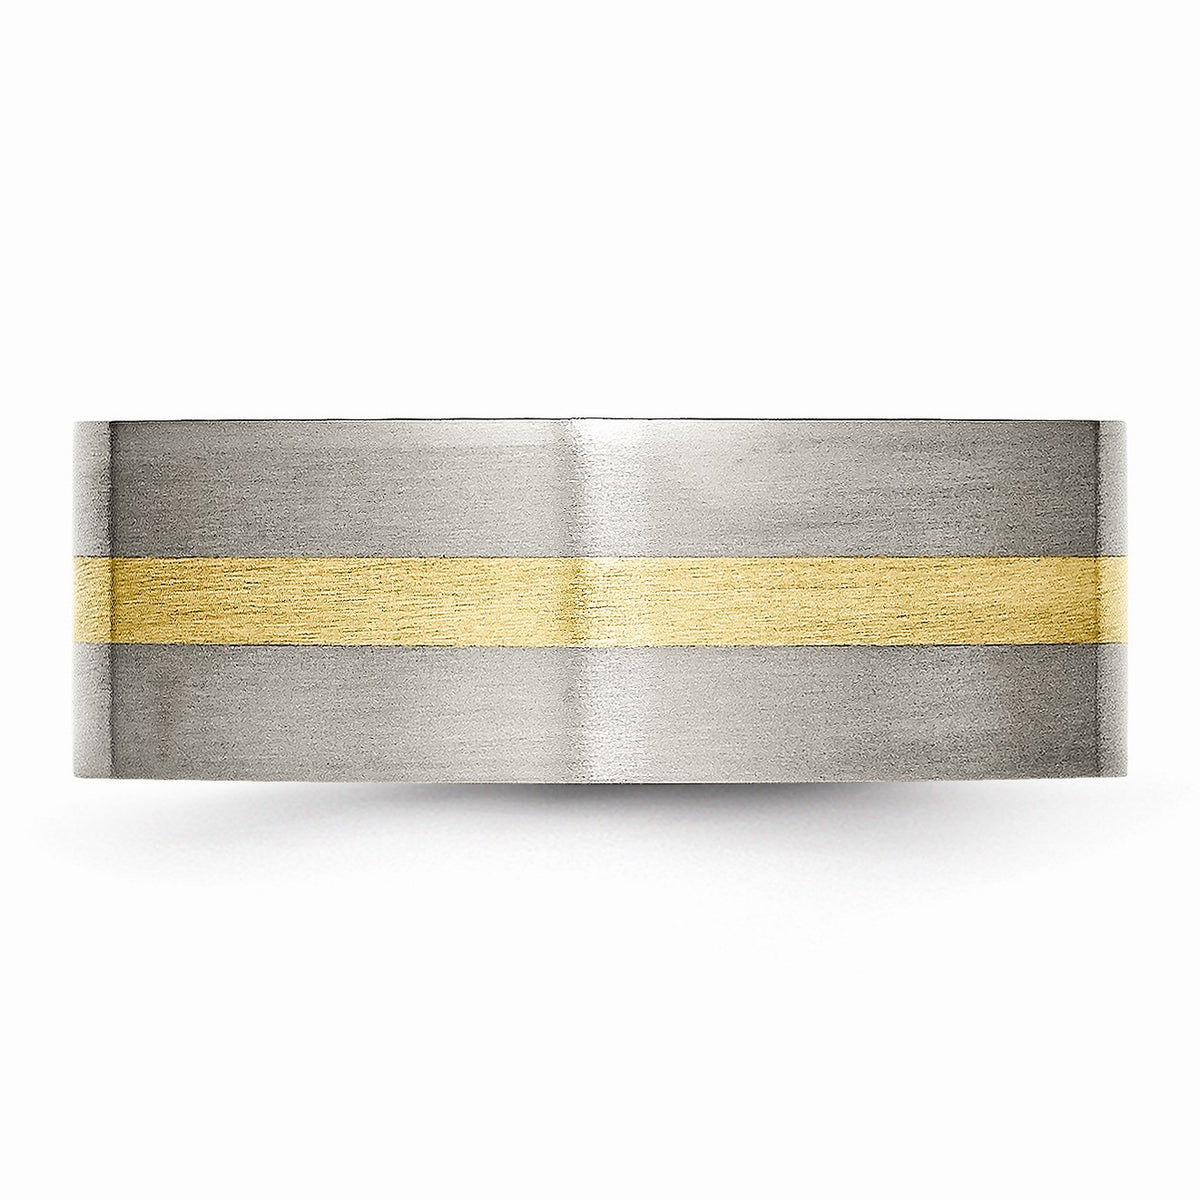 Alternate view of the Titanium and 14K Gold, 8mm Flat Unisex Satin Finish Comfort Fit Band by The Black Bow Jewelry Co.